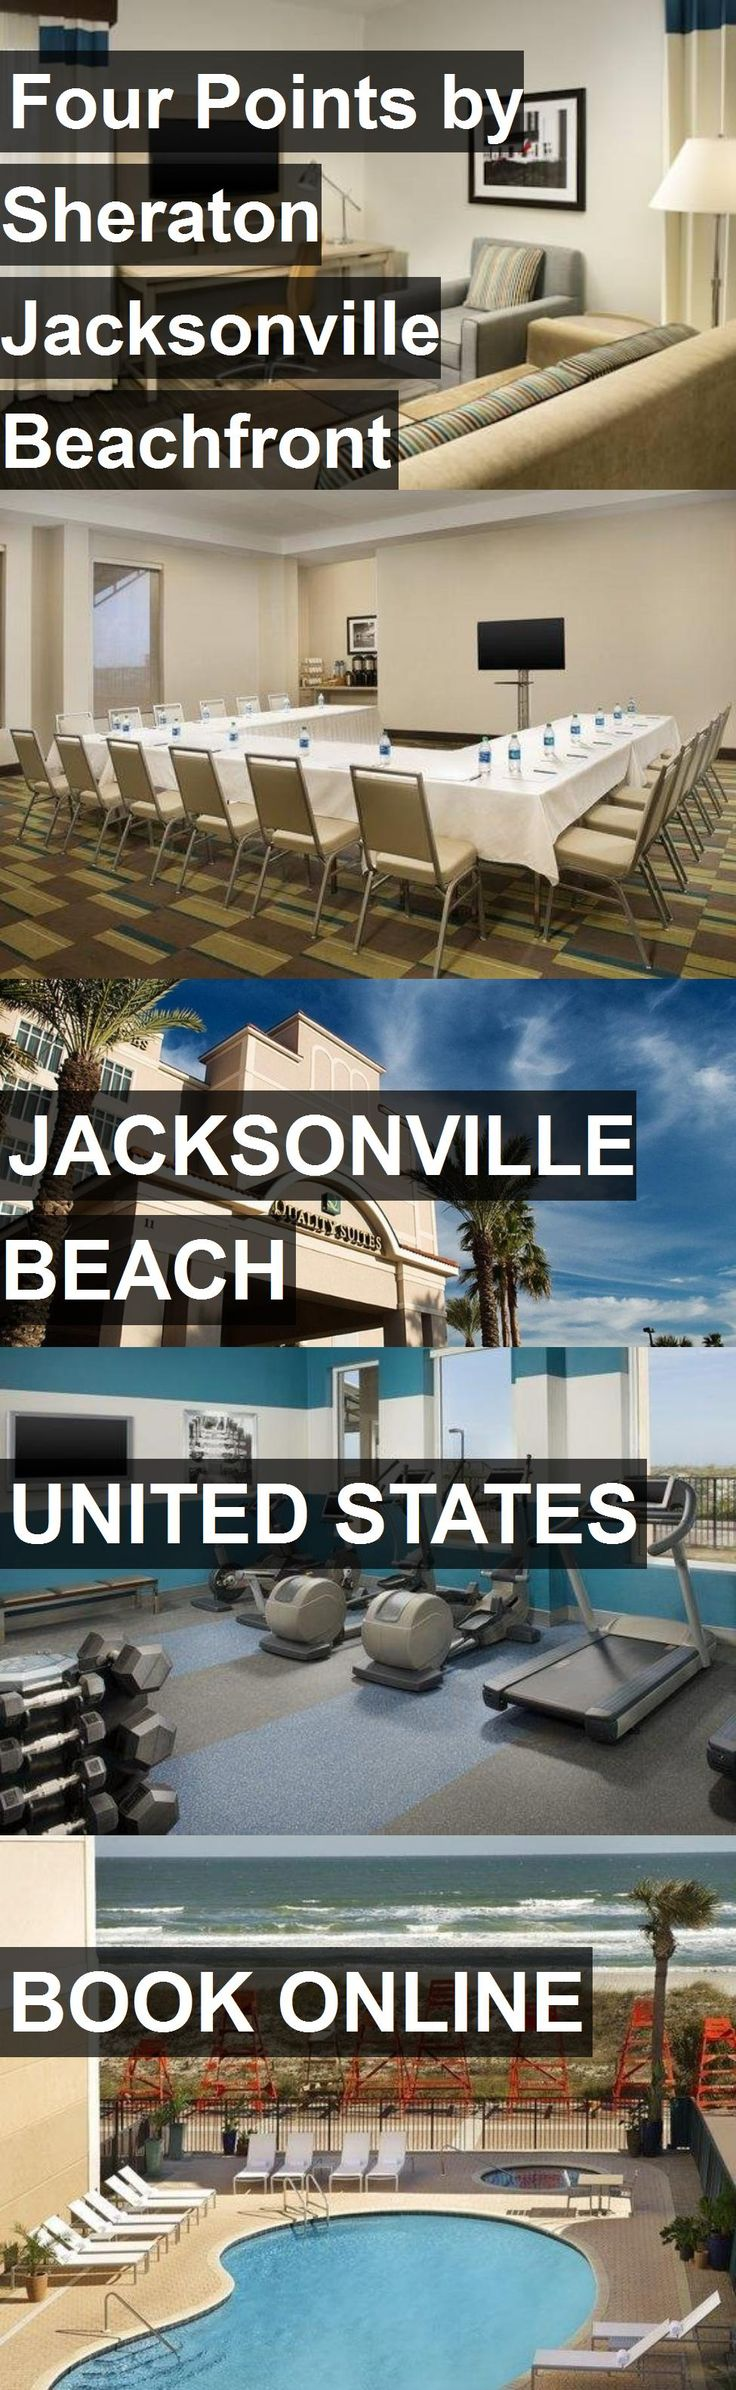 Hotel Four Points by Sheraton Jacksonville Beachfront in Jacksonville Beach, United States. For more information, photos, reviews and best prices please follow the link. #UnitedStates #JacksonvilleBeach #travel #vacation #hotel